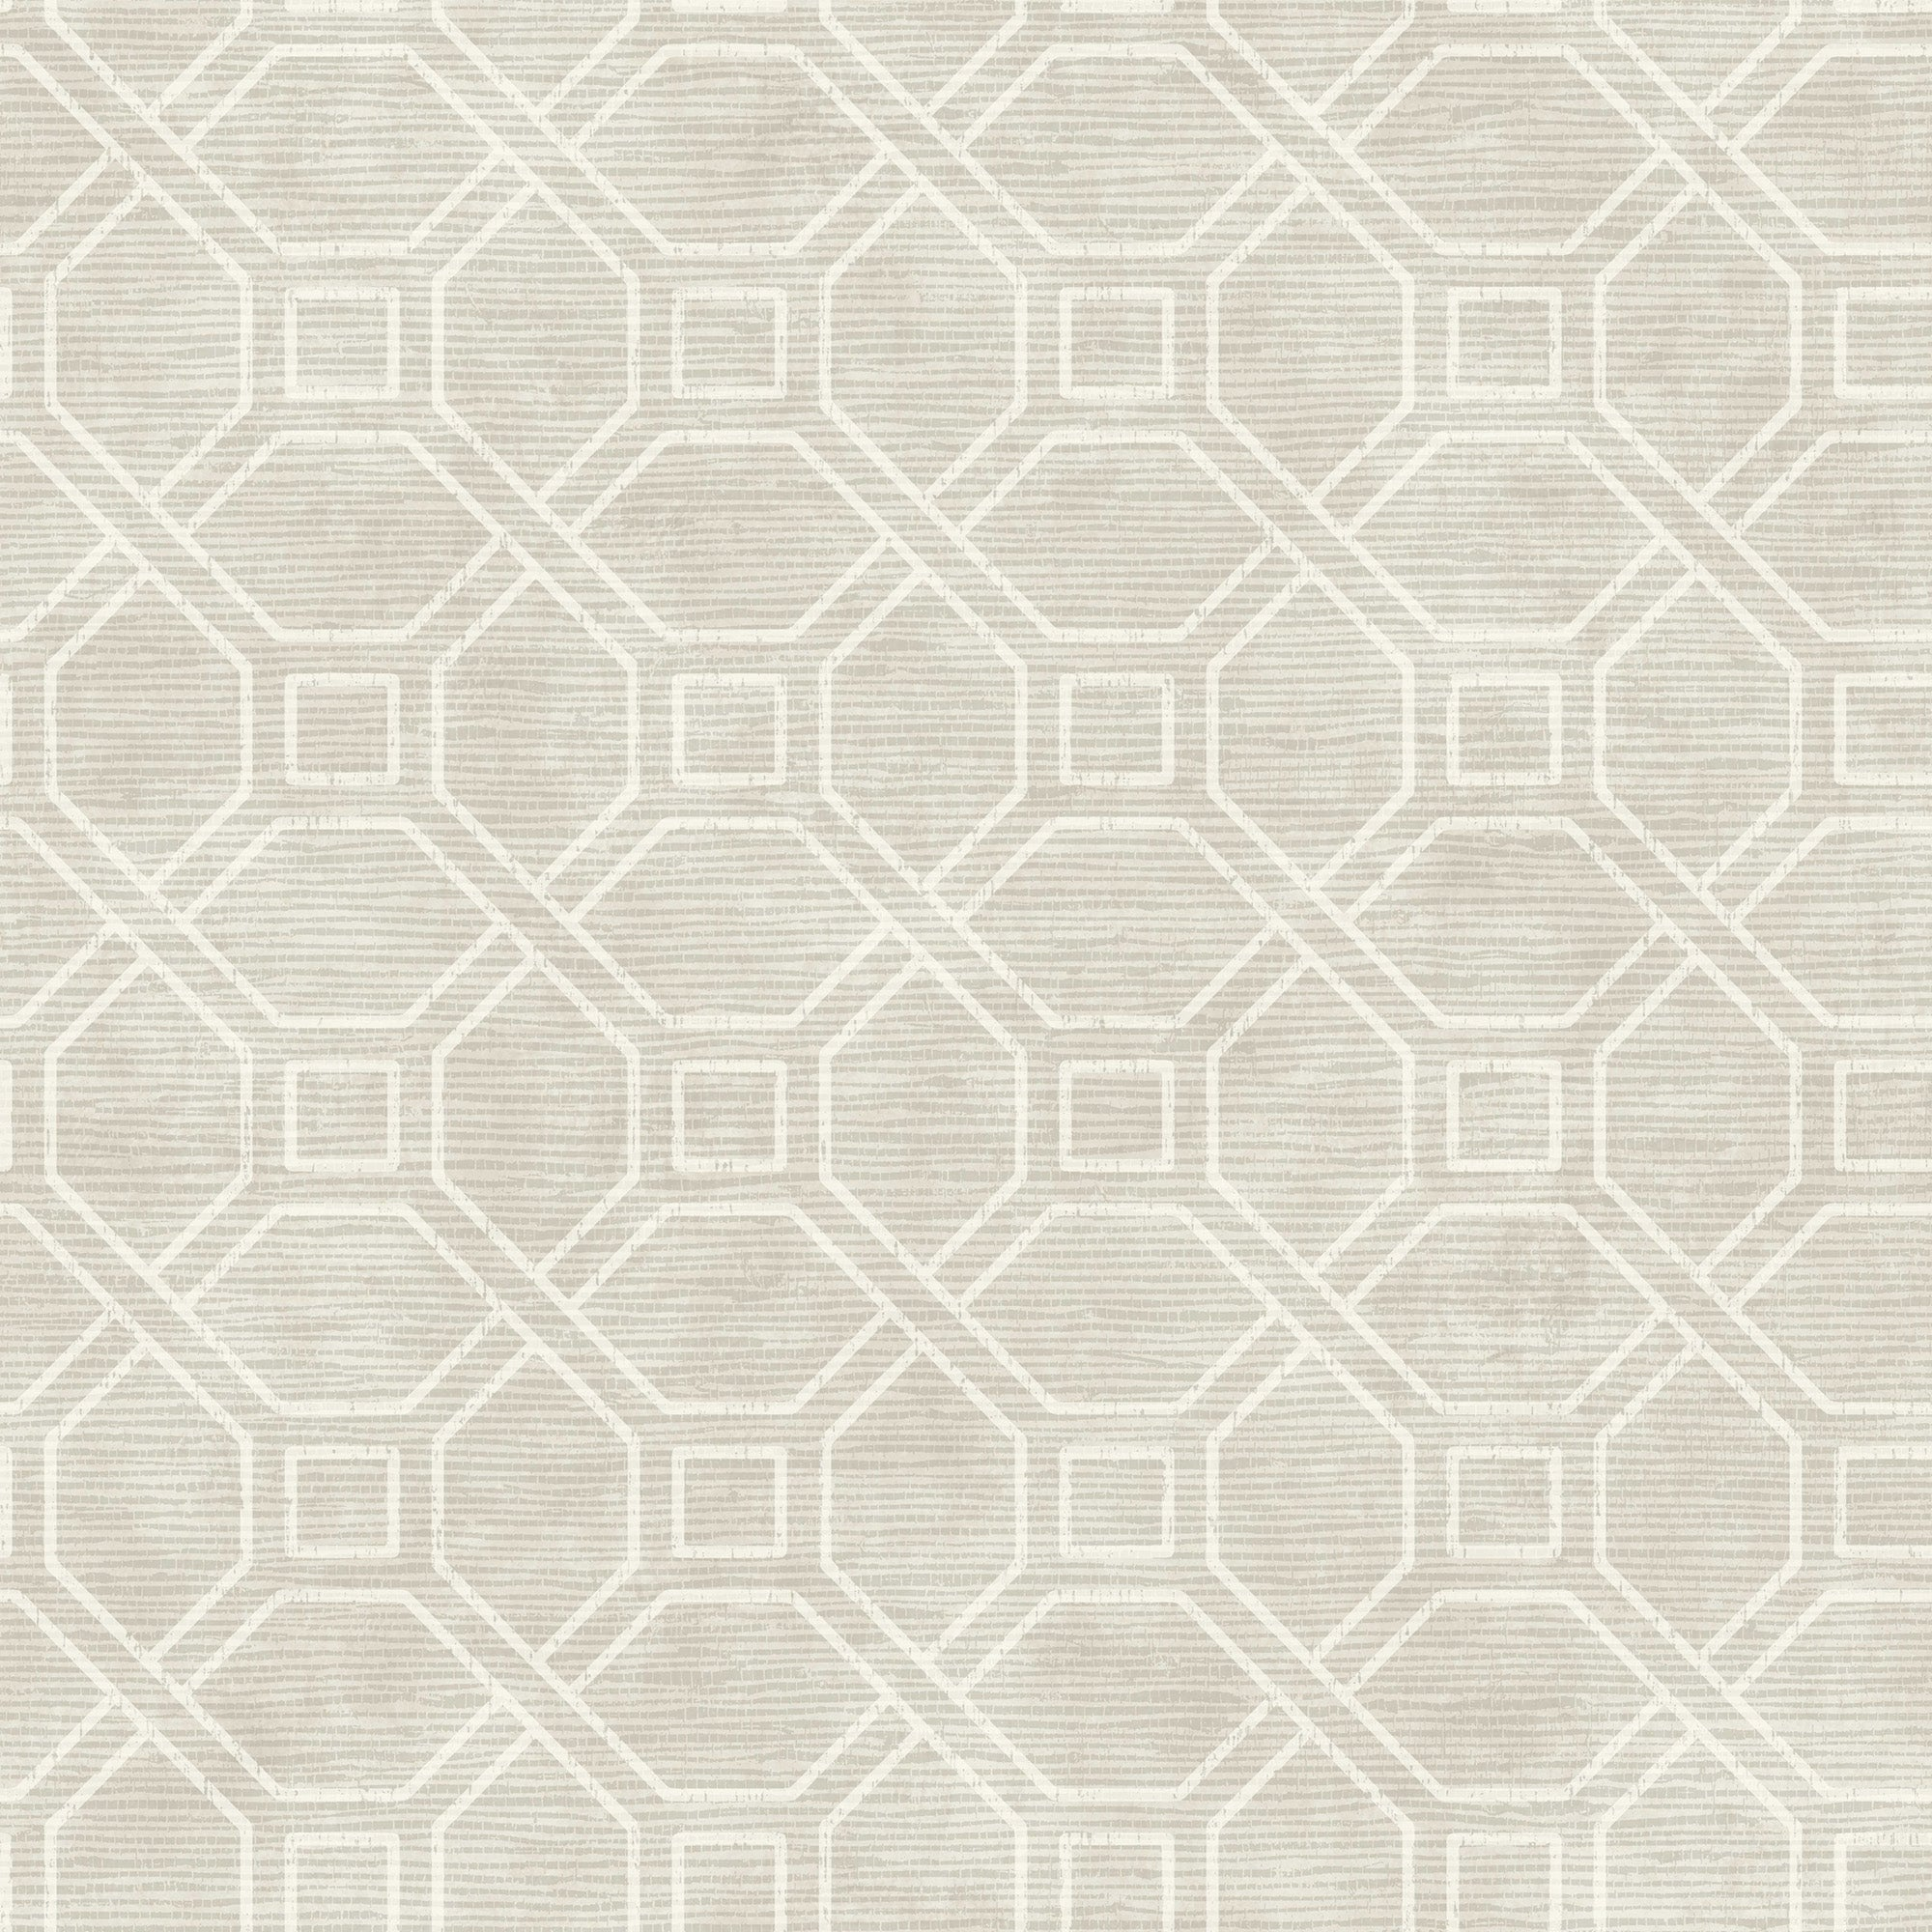 Coastal Trellis Wallpaper - Gray